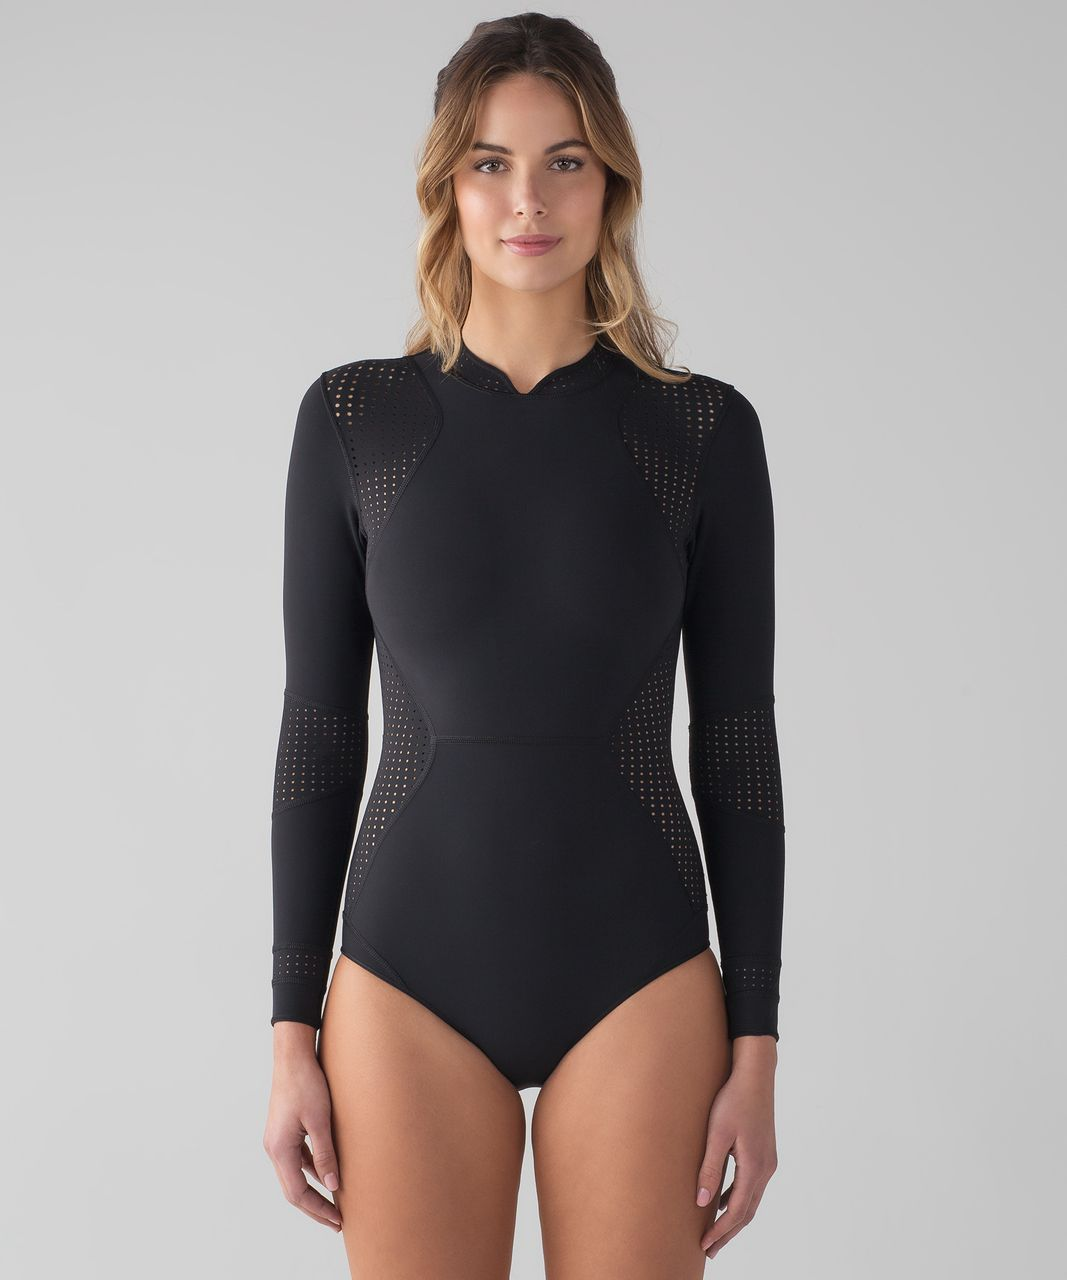 Lululemon Paddle Times Suit Black Lulu Fanatics